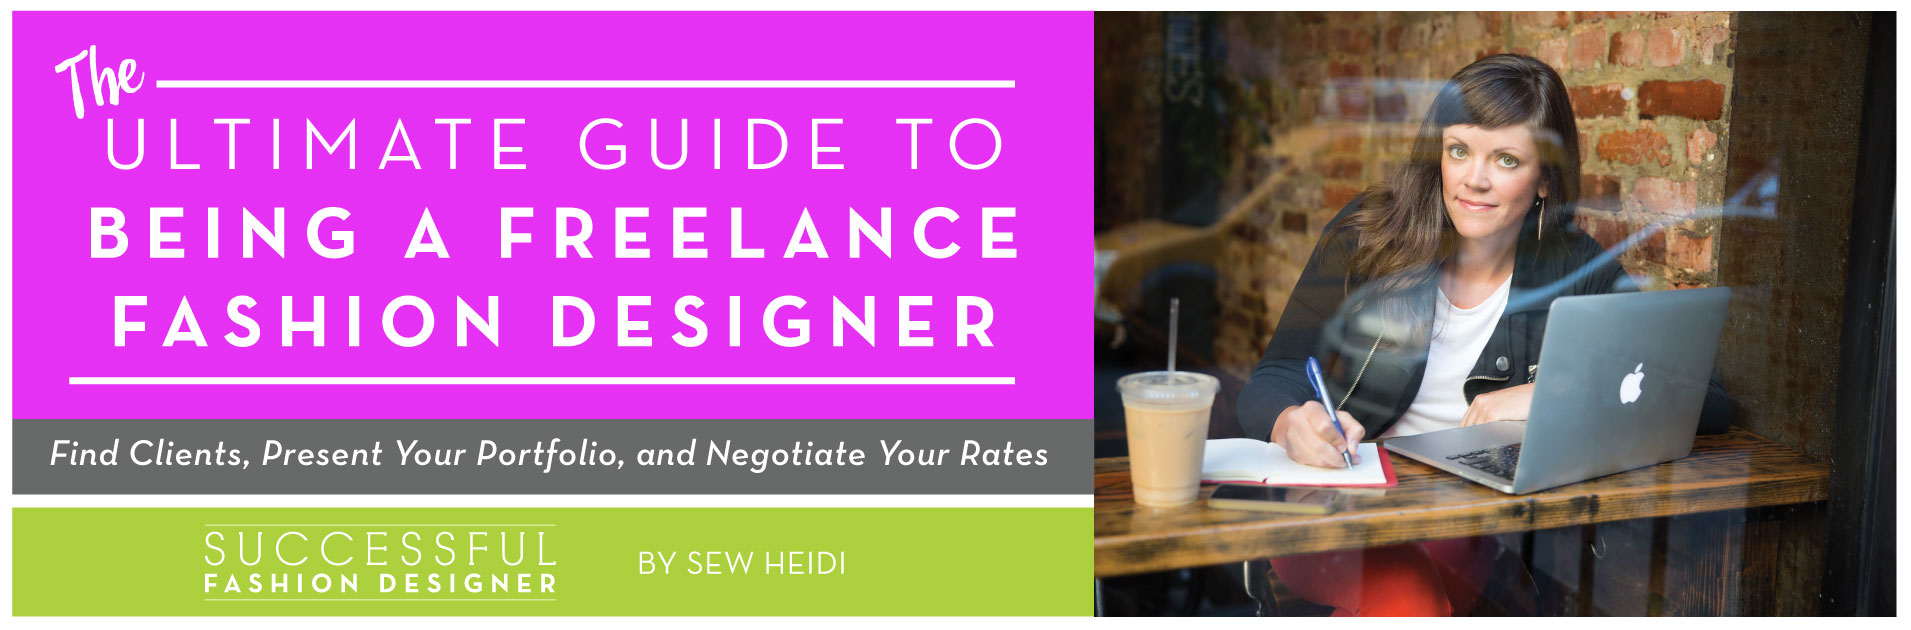 How To Be A Freelance Fashion Designer The Free Ultimate Guide